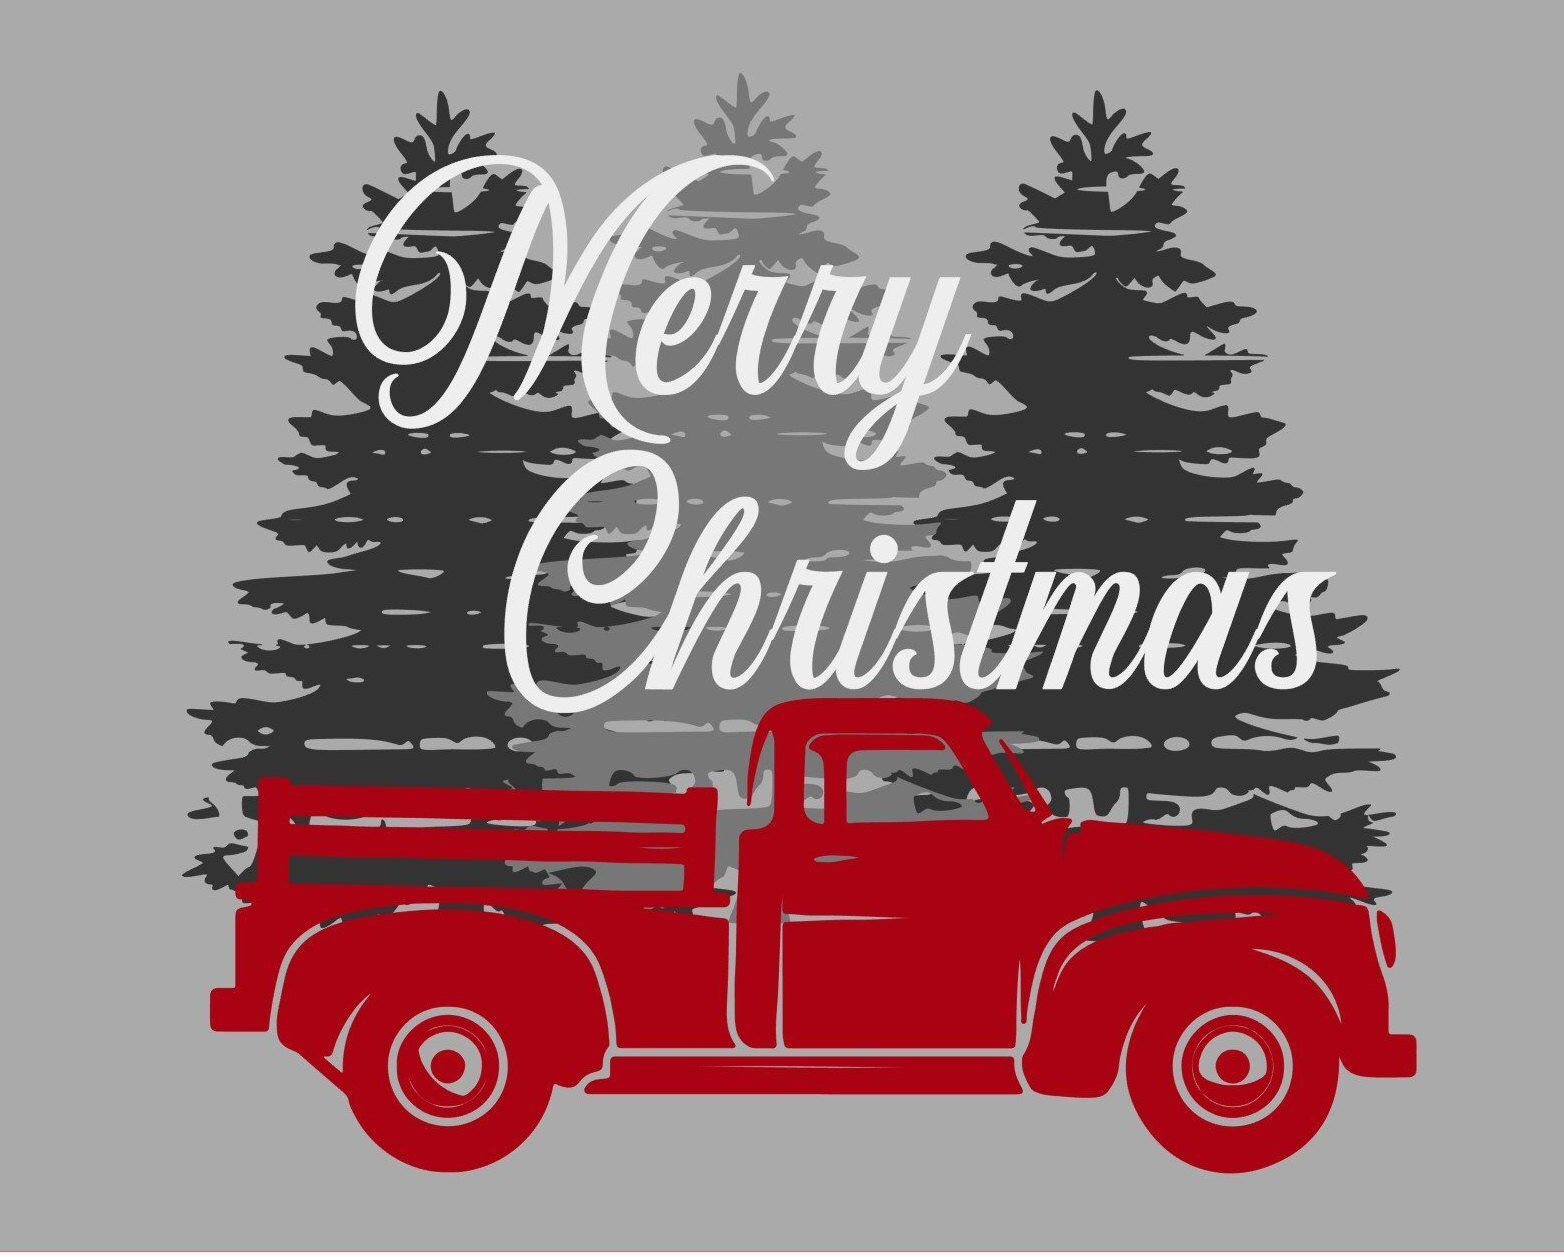 Merry Christmas Red Truck Vintage Trees SVG Christmas